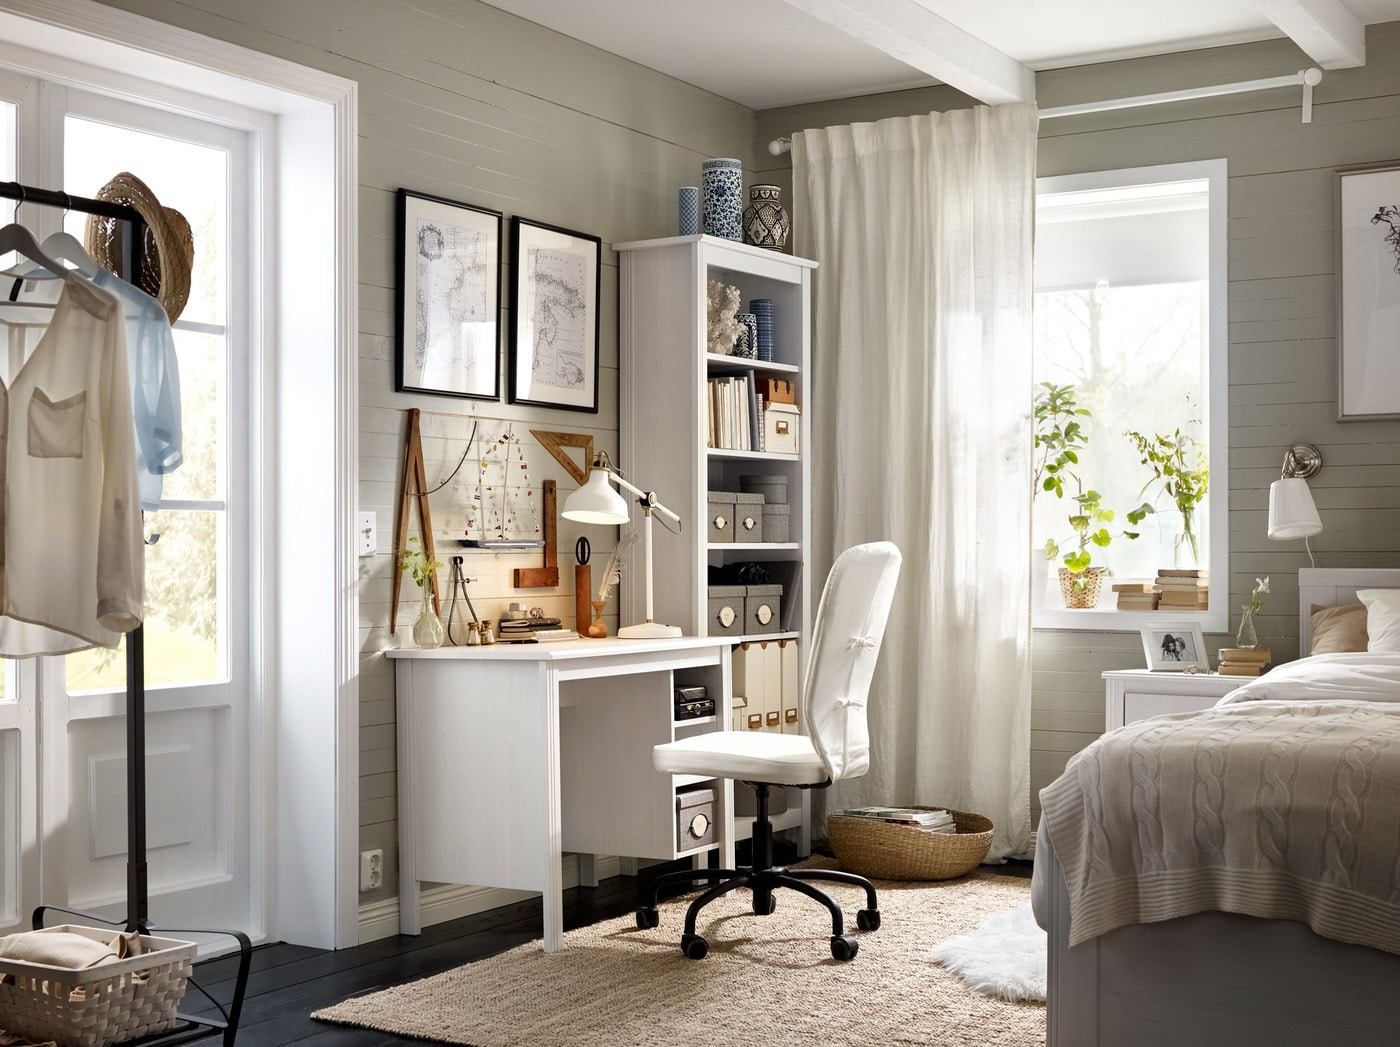 A blended bedroom and home office space - IKEA